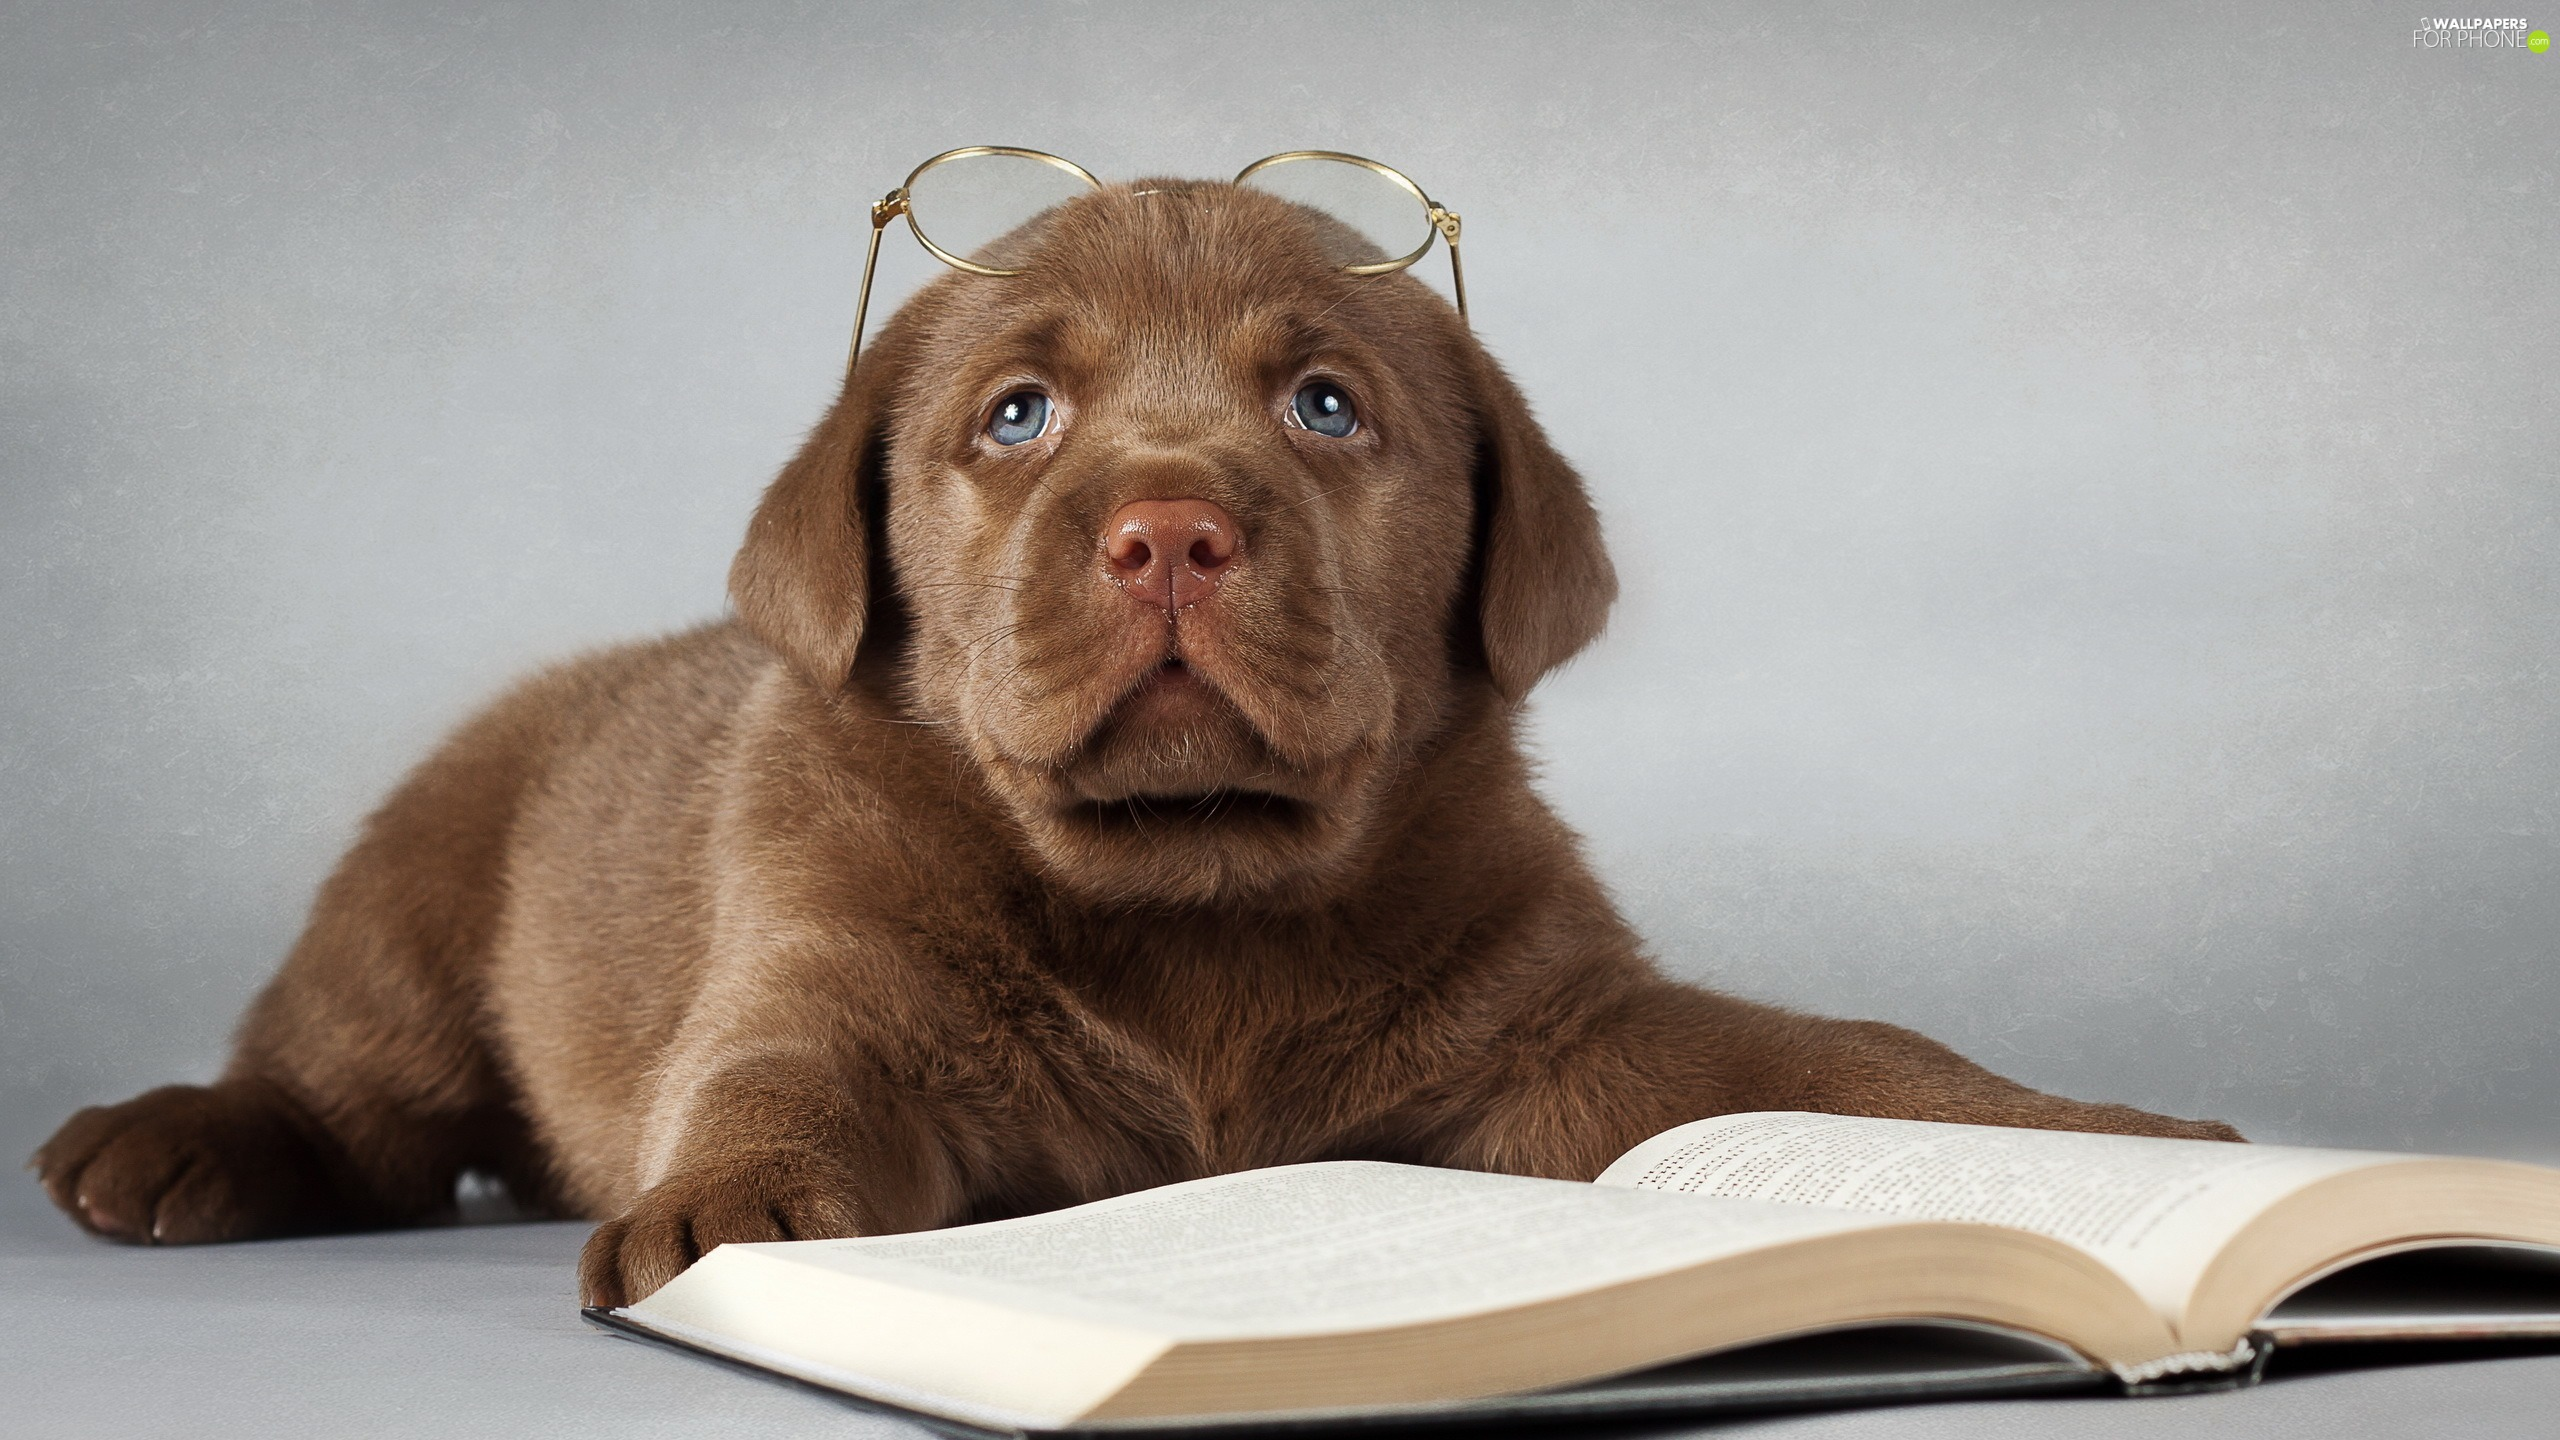 Book, Glasses, Puppy, Labrador Retriever, sad